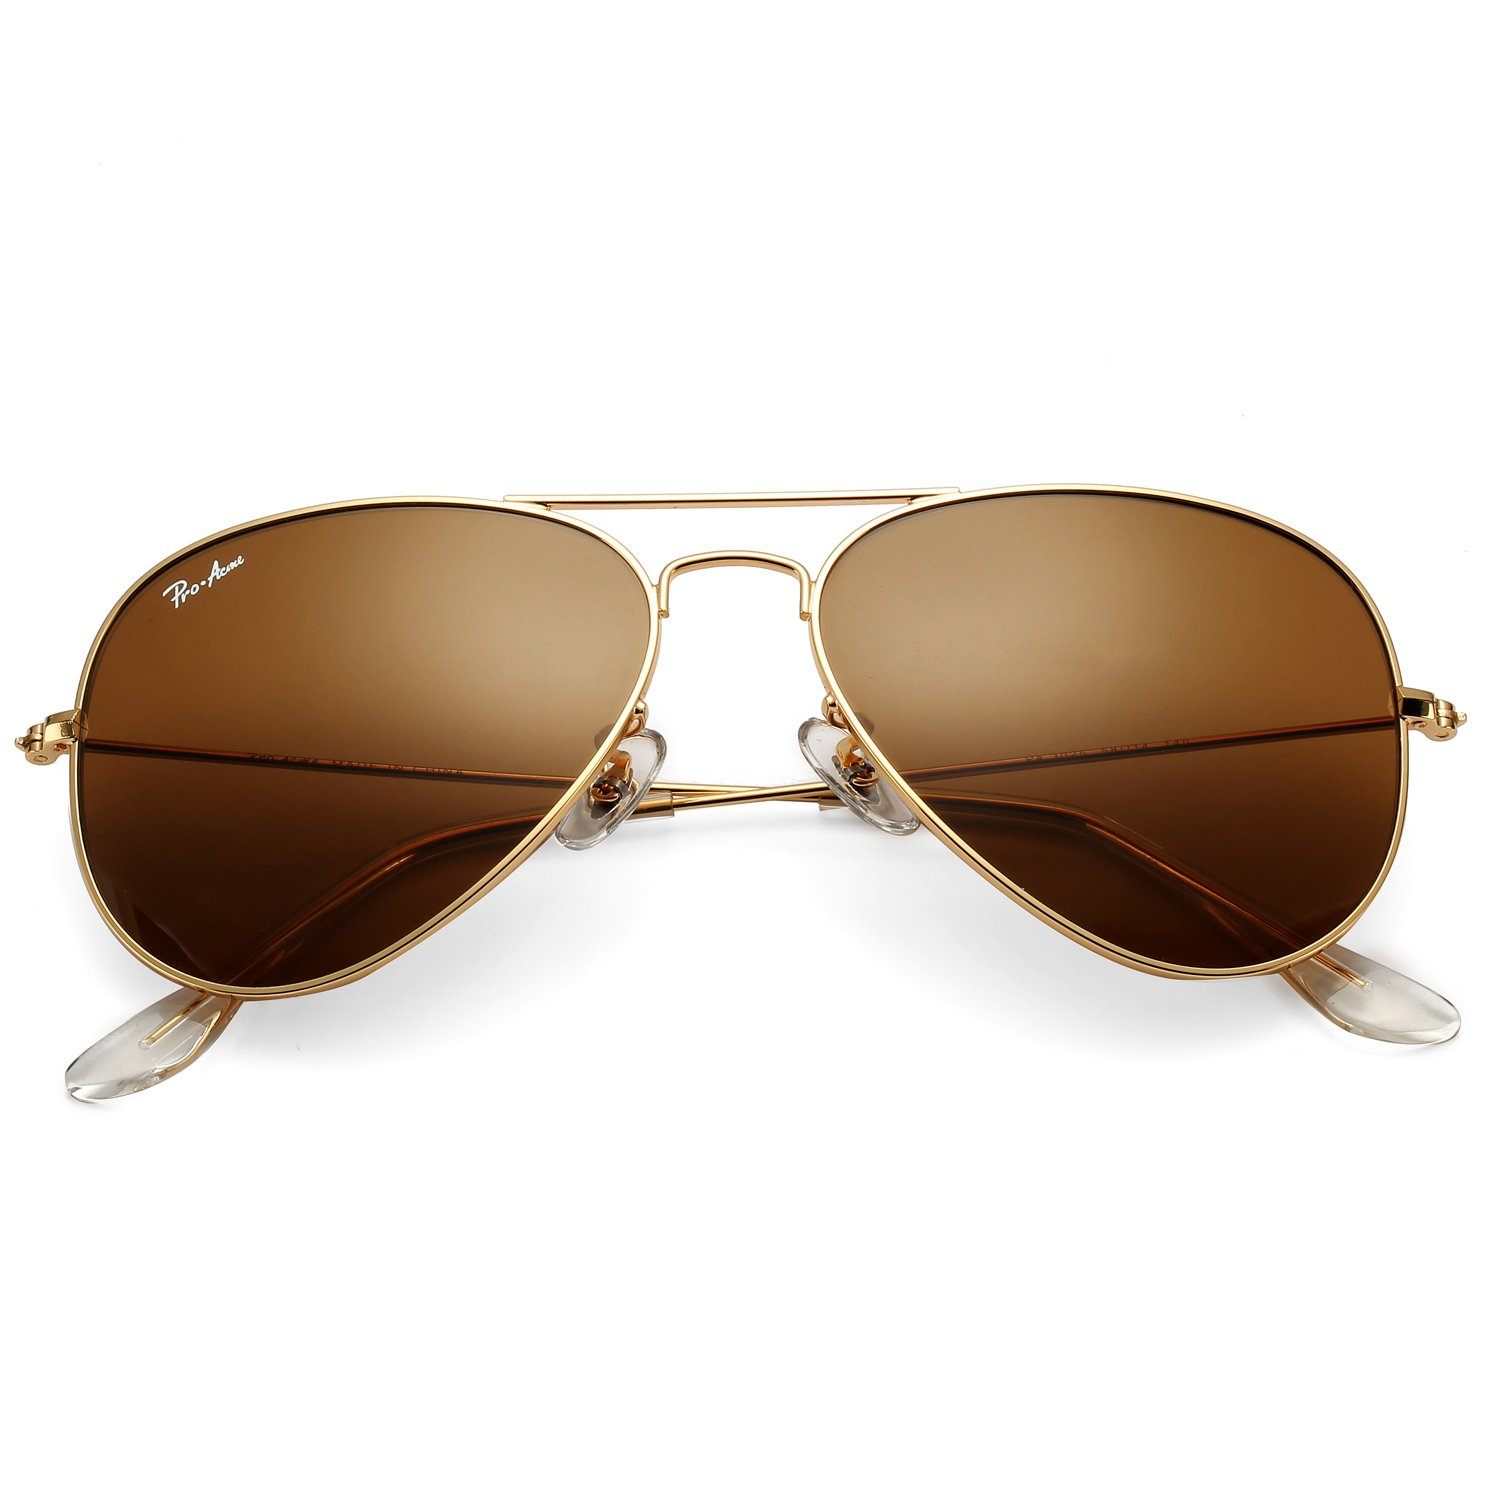 Pro Acme Classic Aviator Sunglasses for Men Women 100% Real Glass Lens (Gold/Brown) by Pro Acme